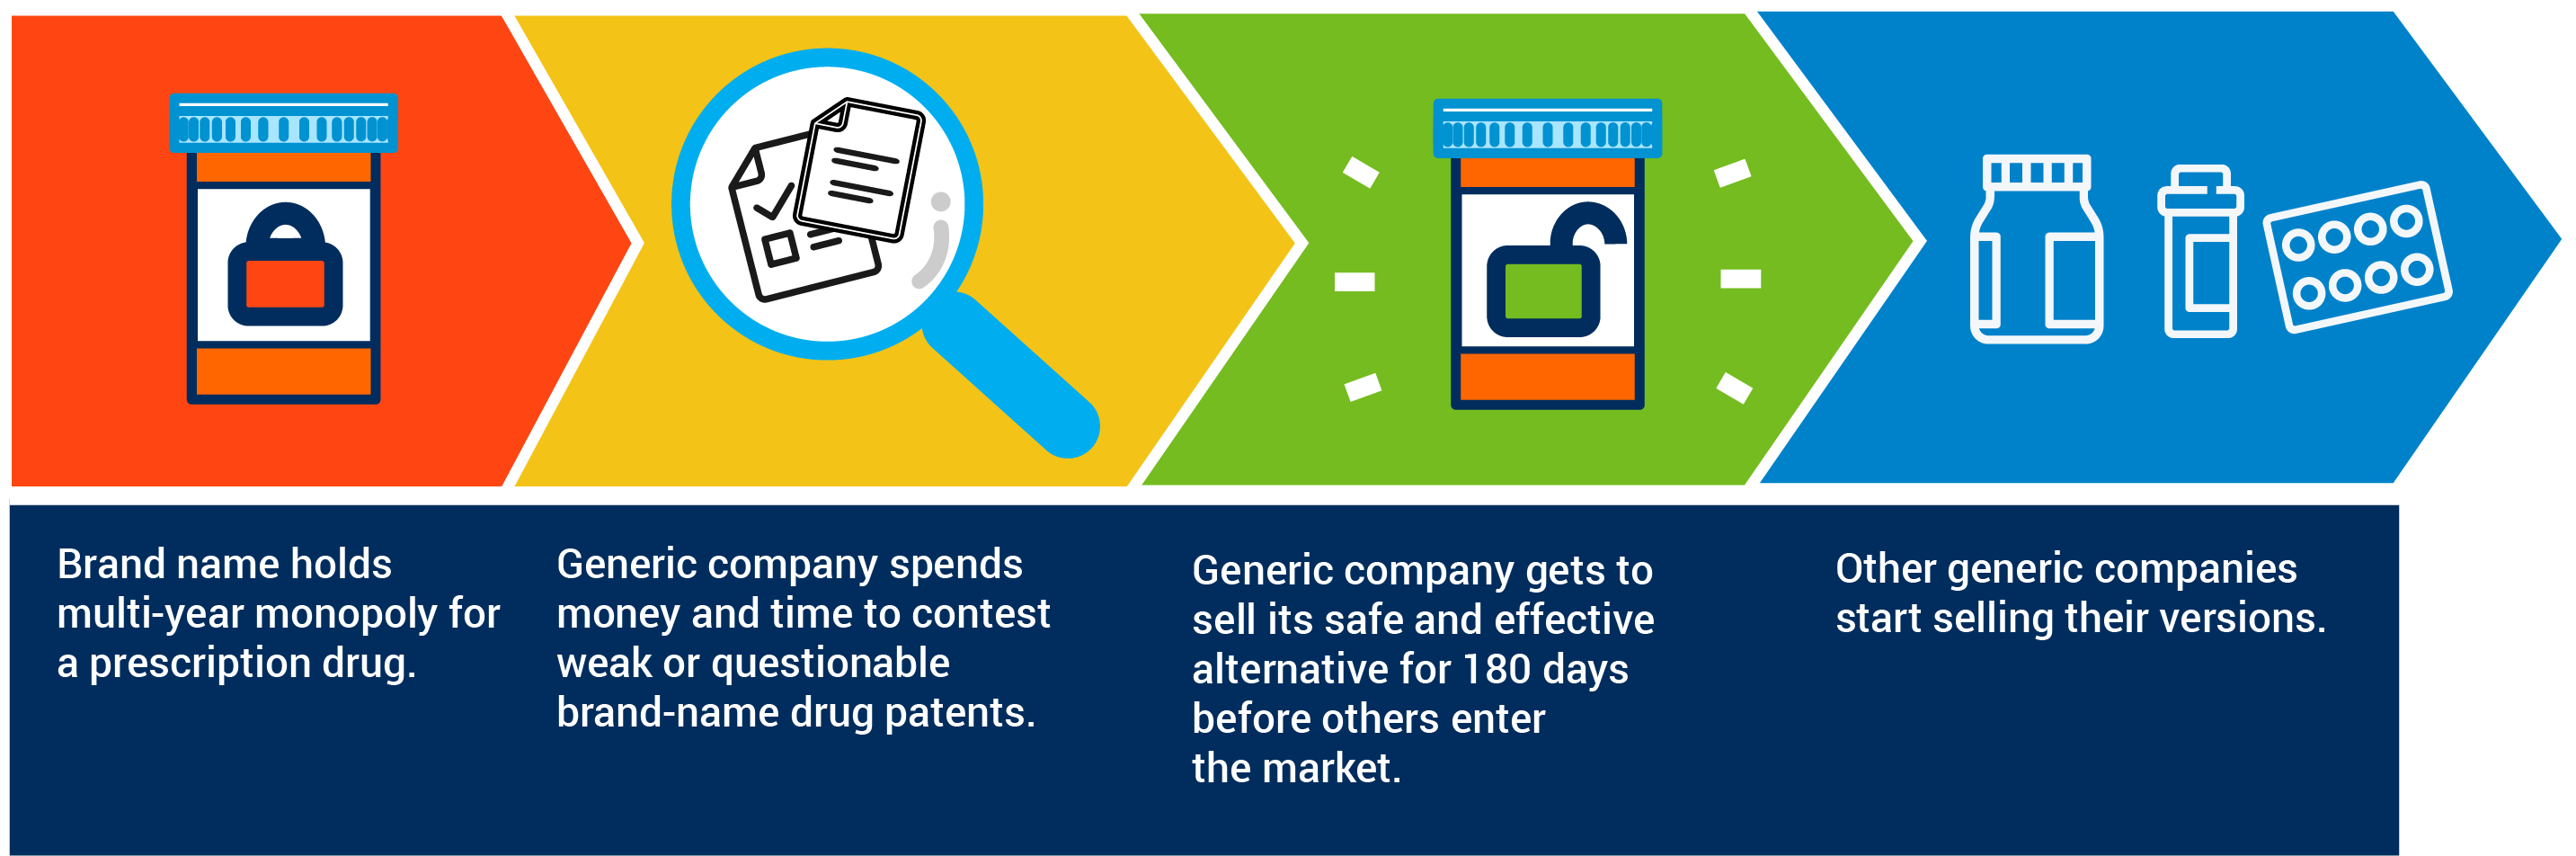 180-day period of exclusivity incentive for generic medicines